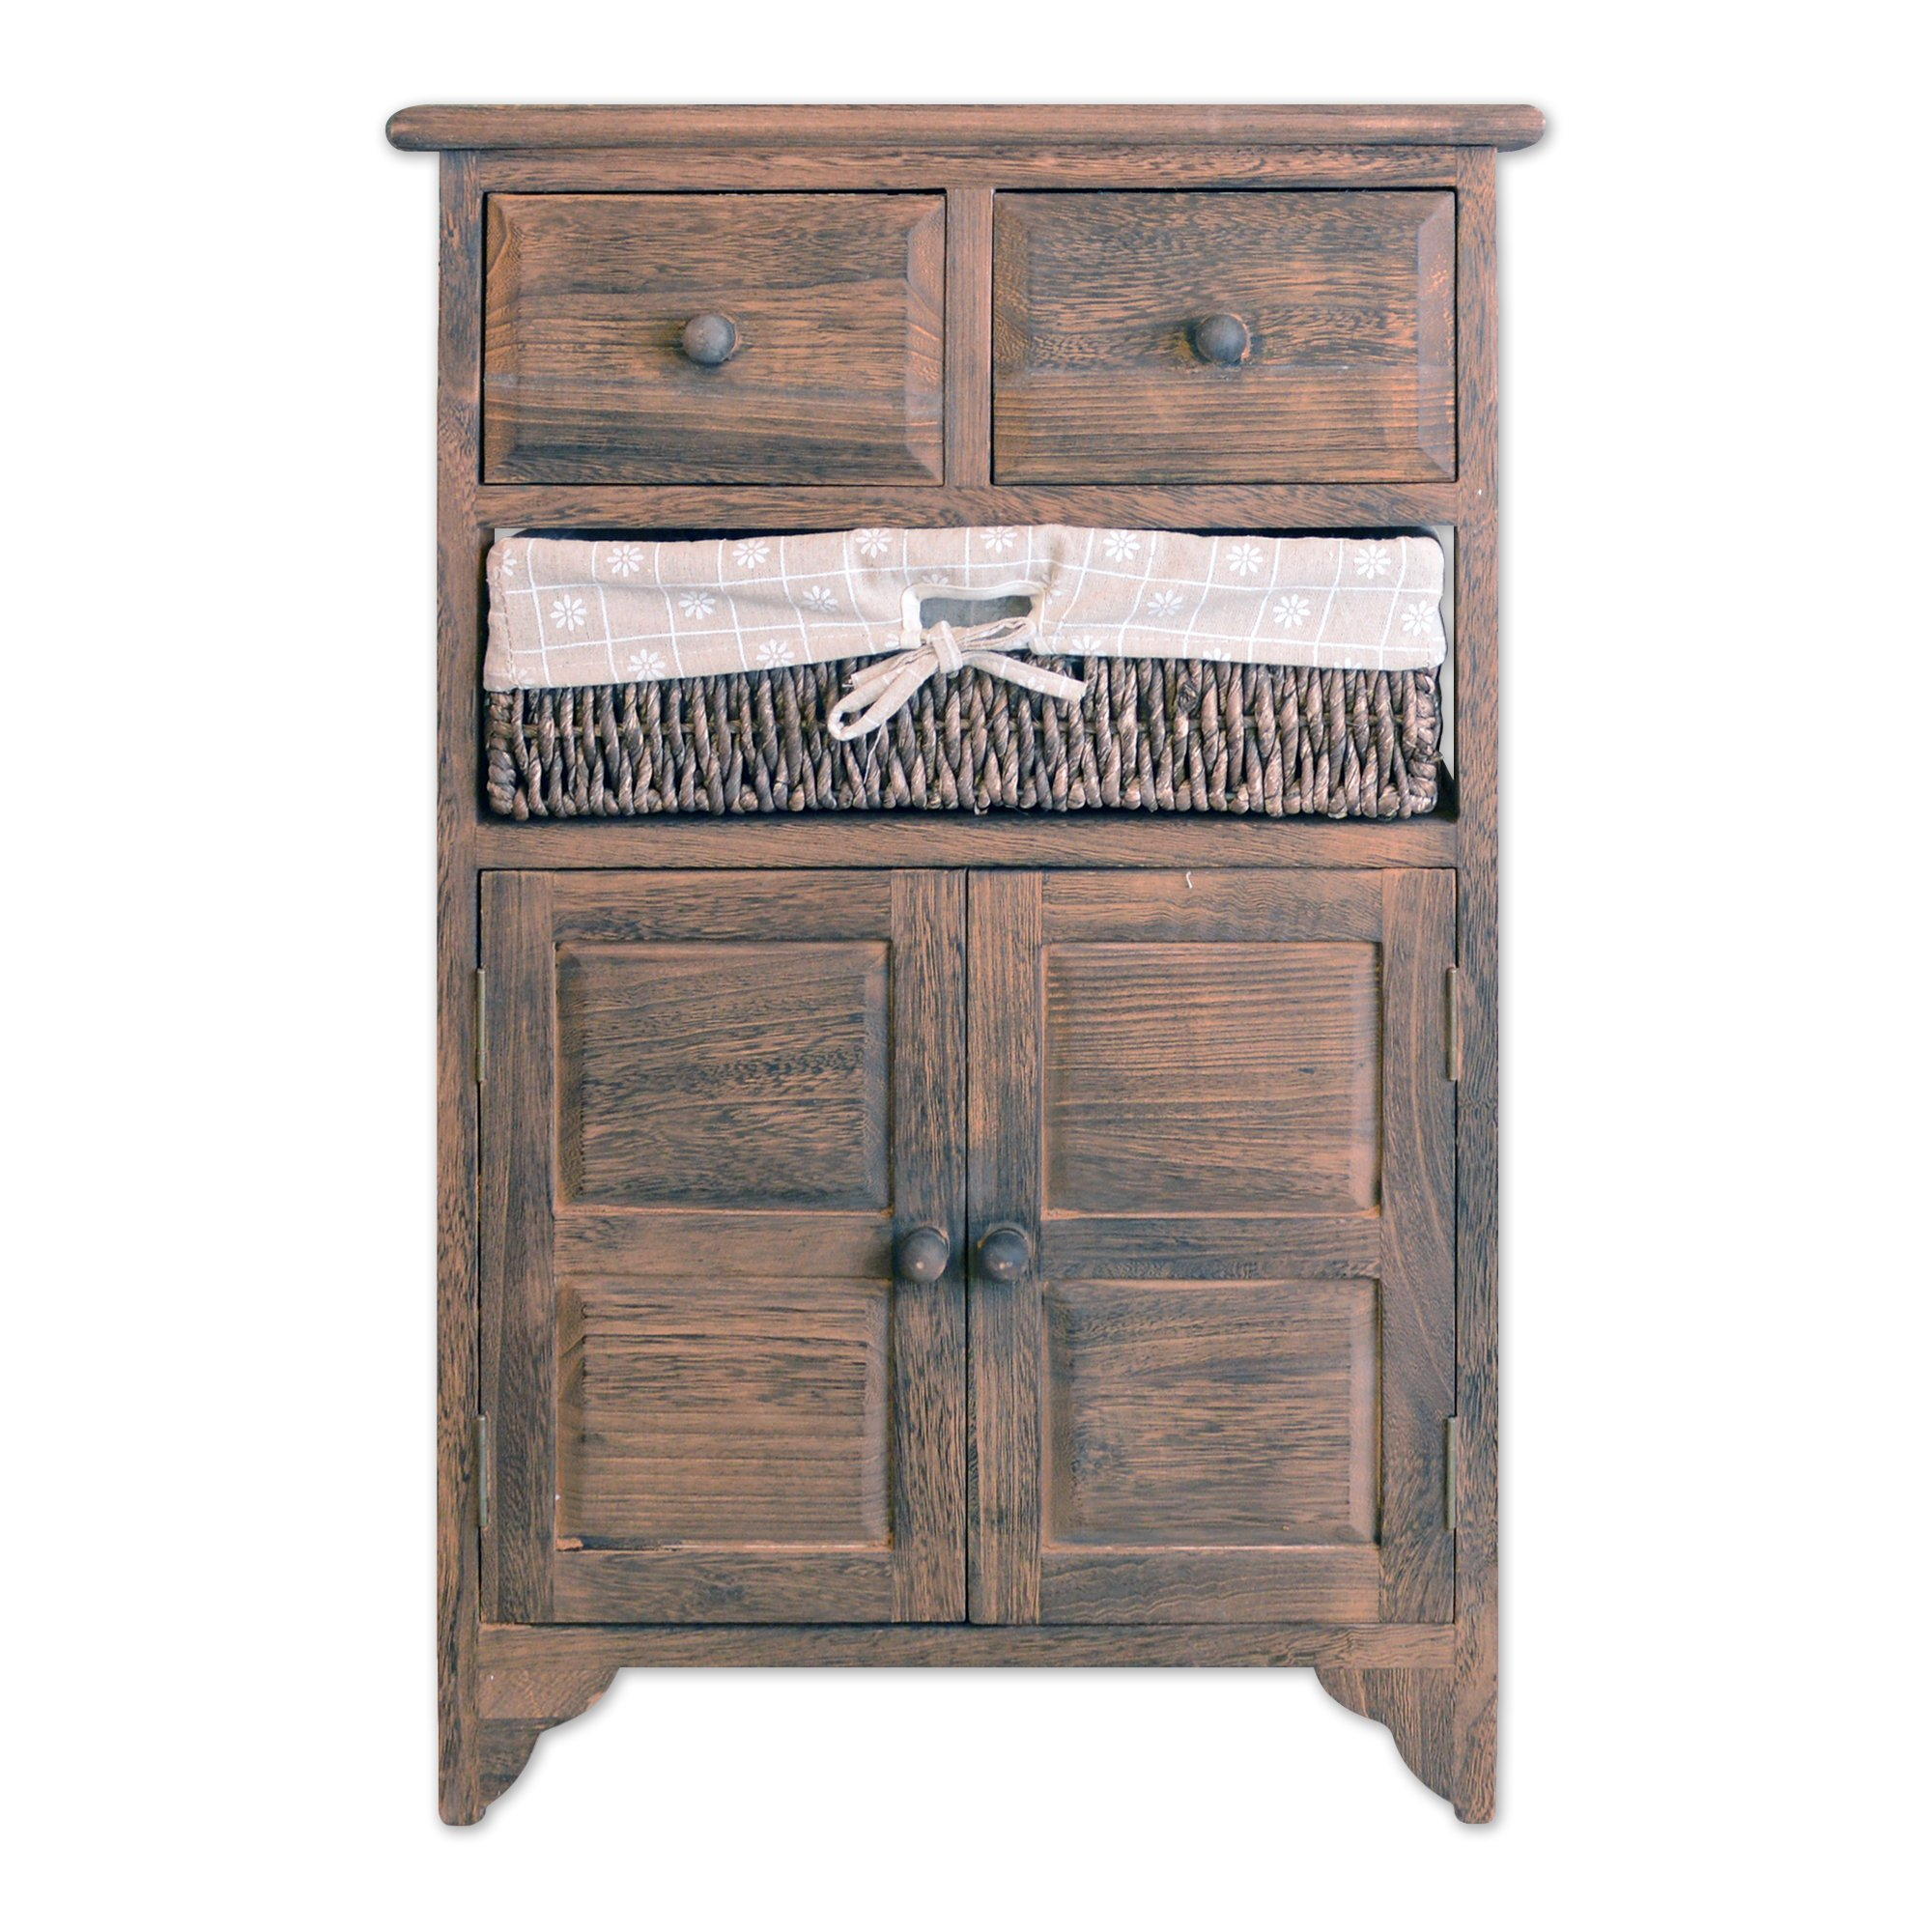 TransSino Treasures 27'' Wooden Side Cabinet with 2 Doors 2 Drawers and 1 Rattan Basket in Antique Walnut Finish